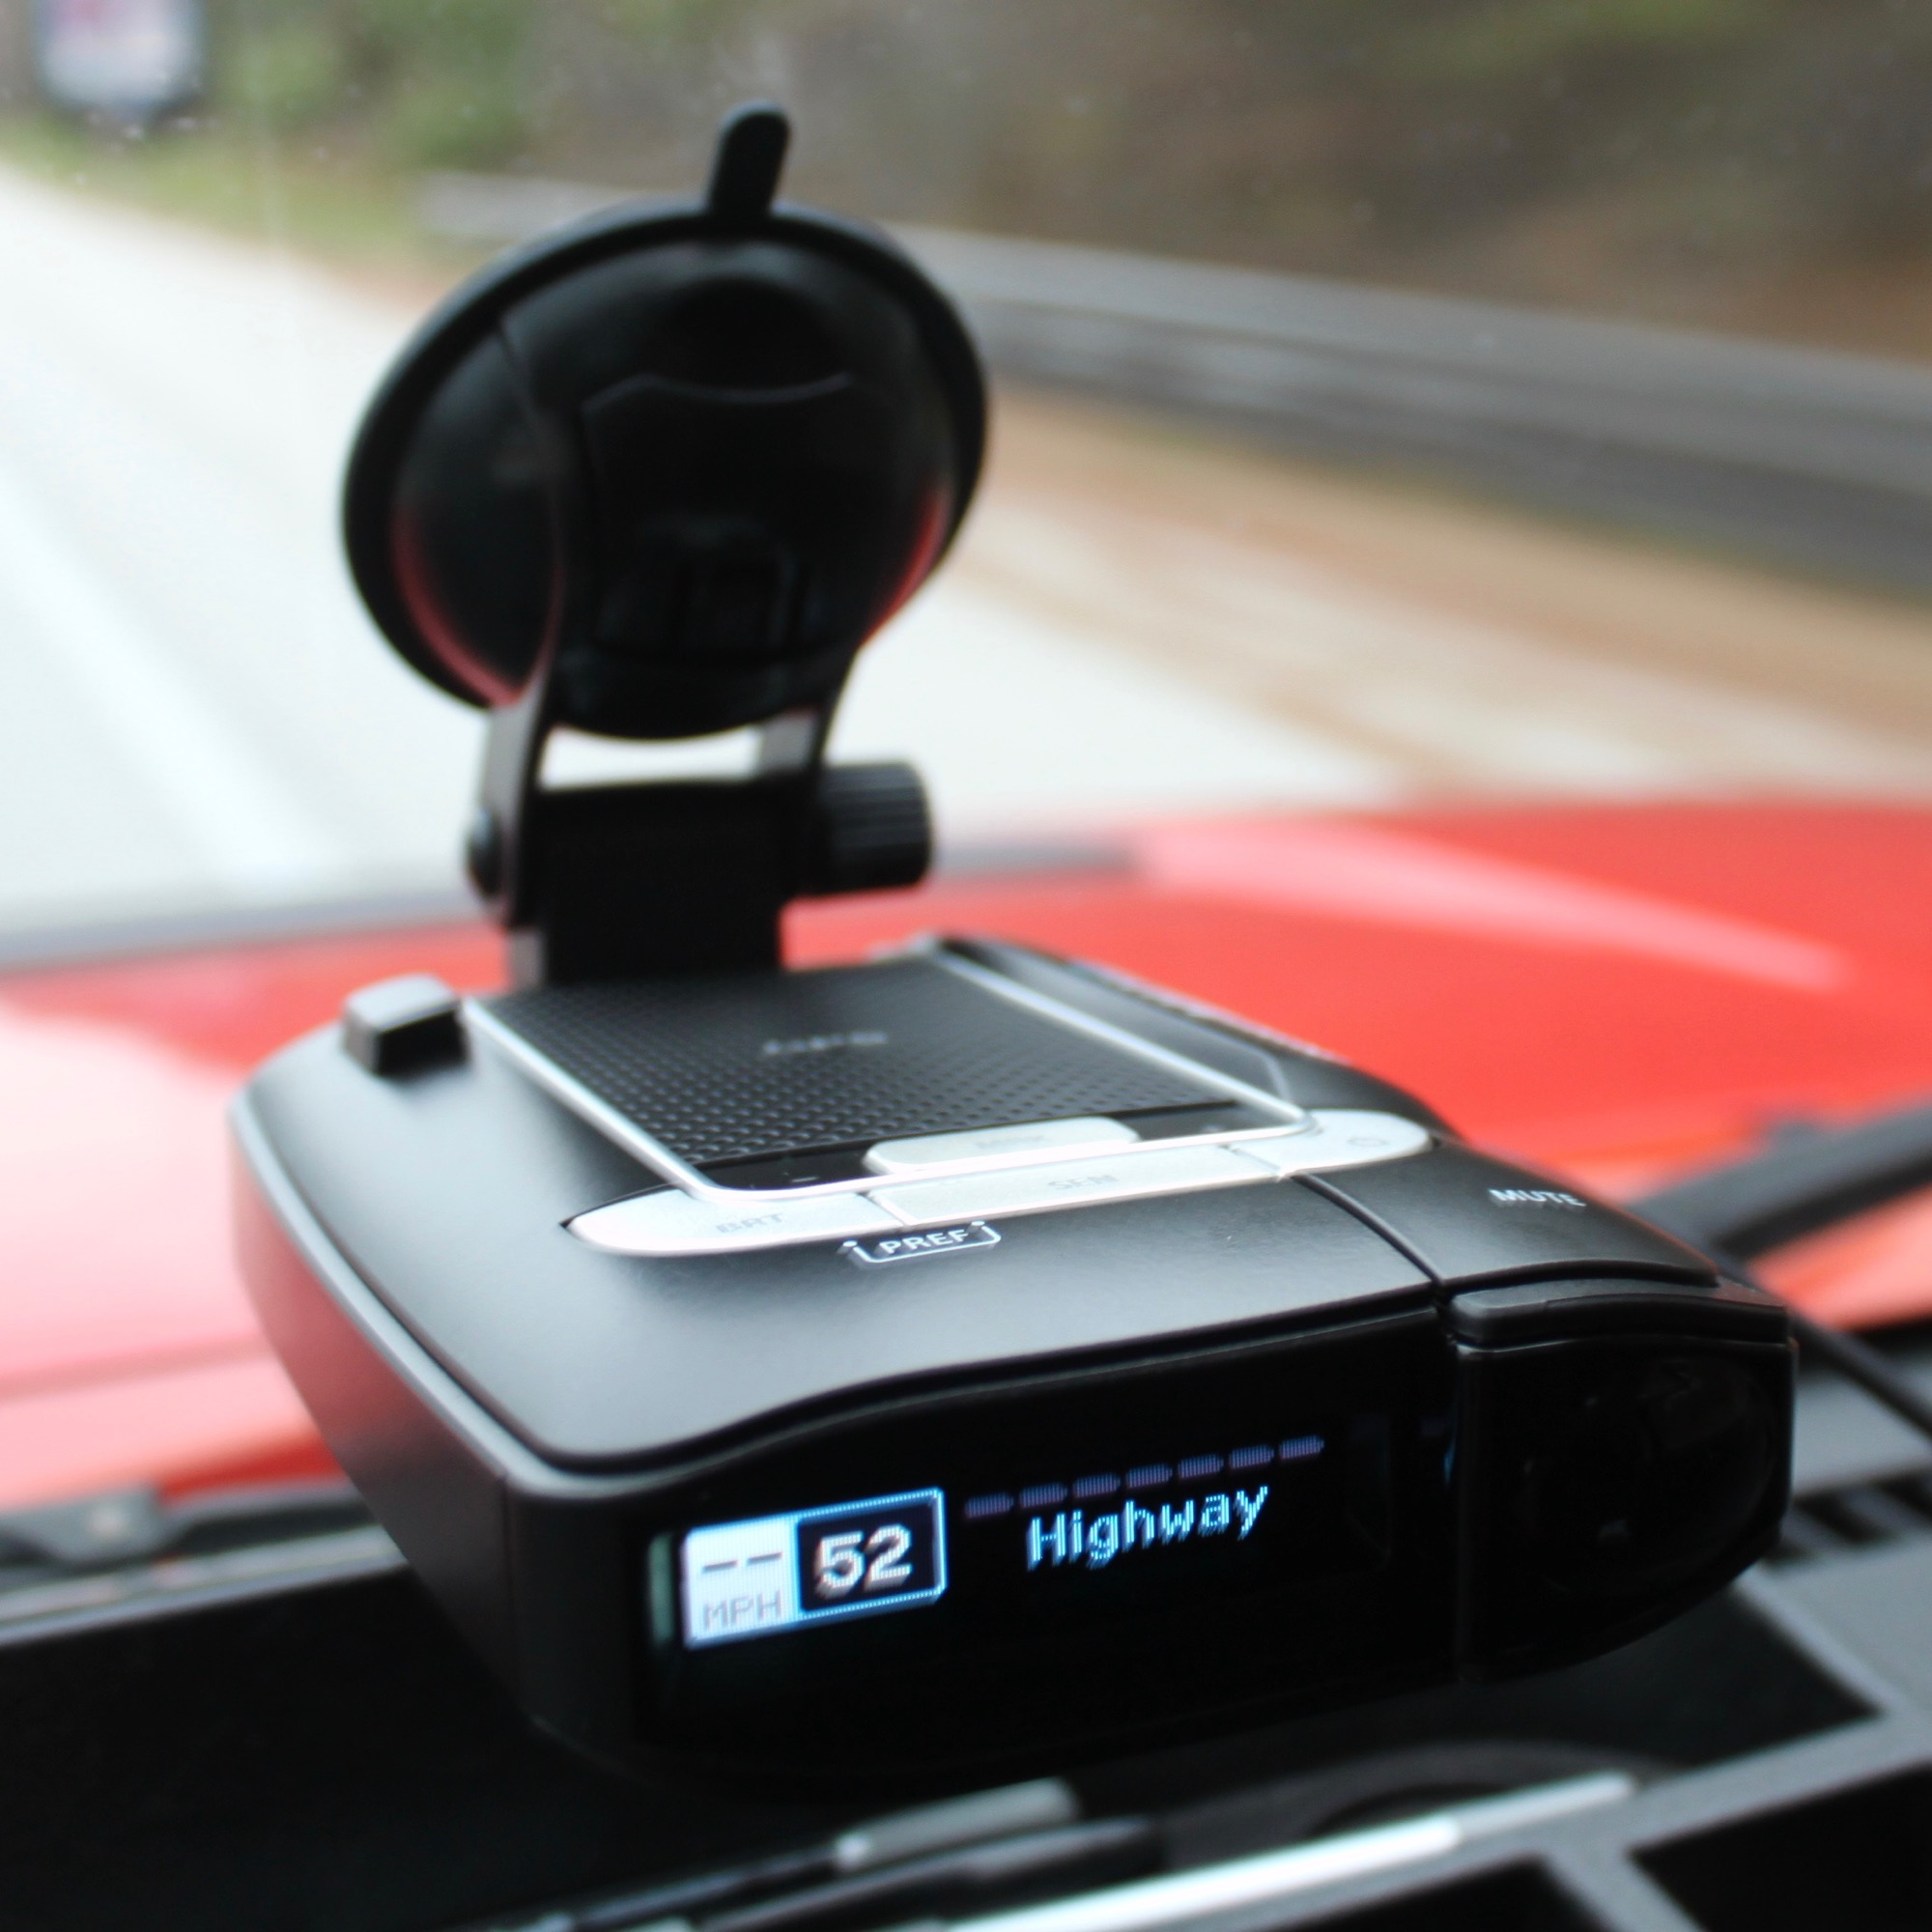 Red Light Camera Check: Spring Driving With Escort Max 360